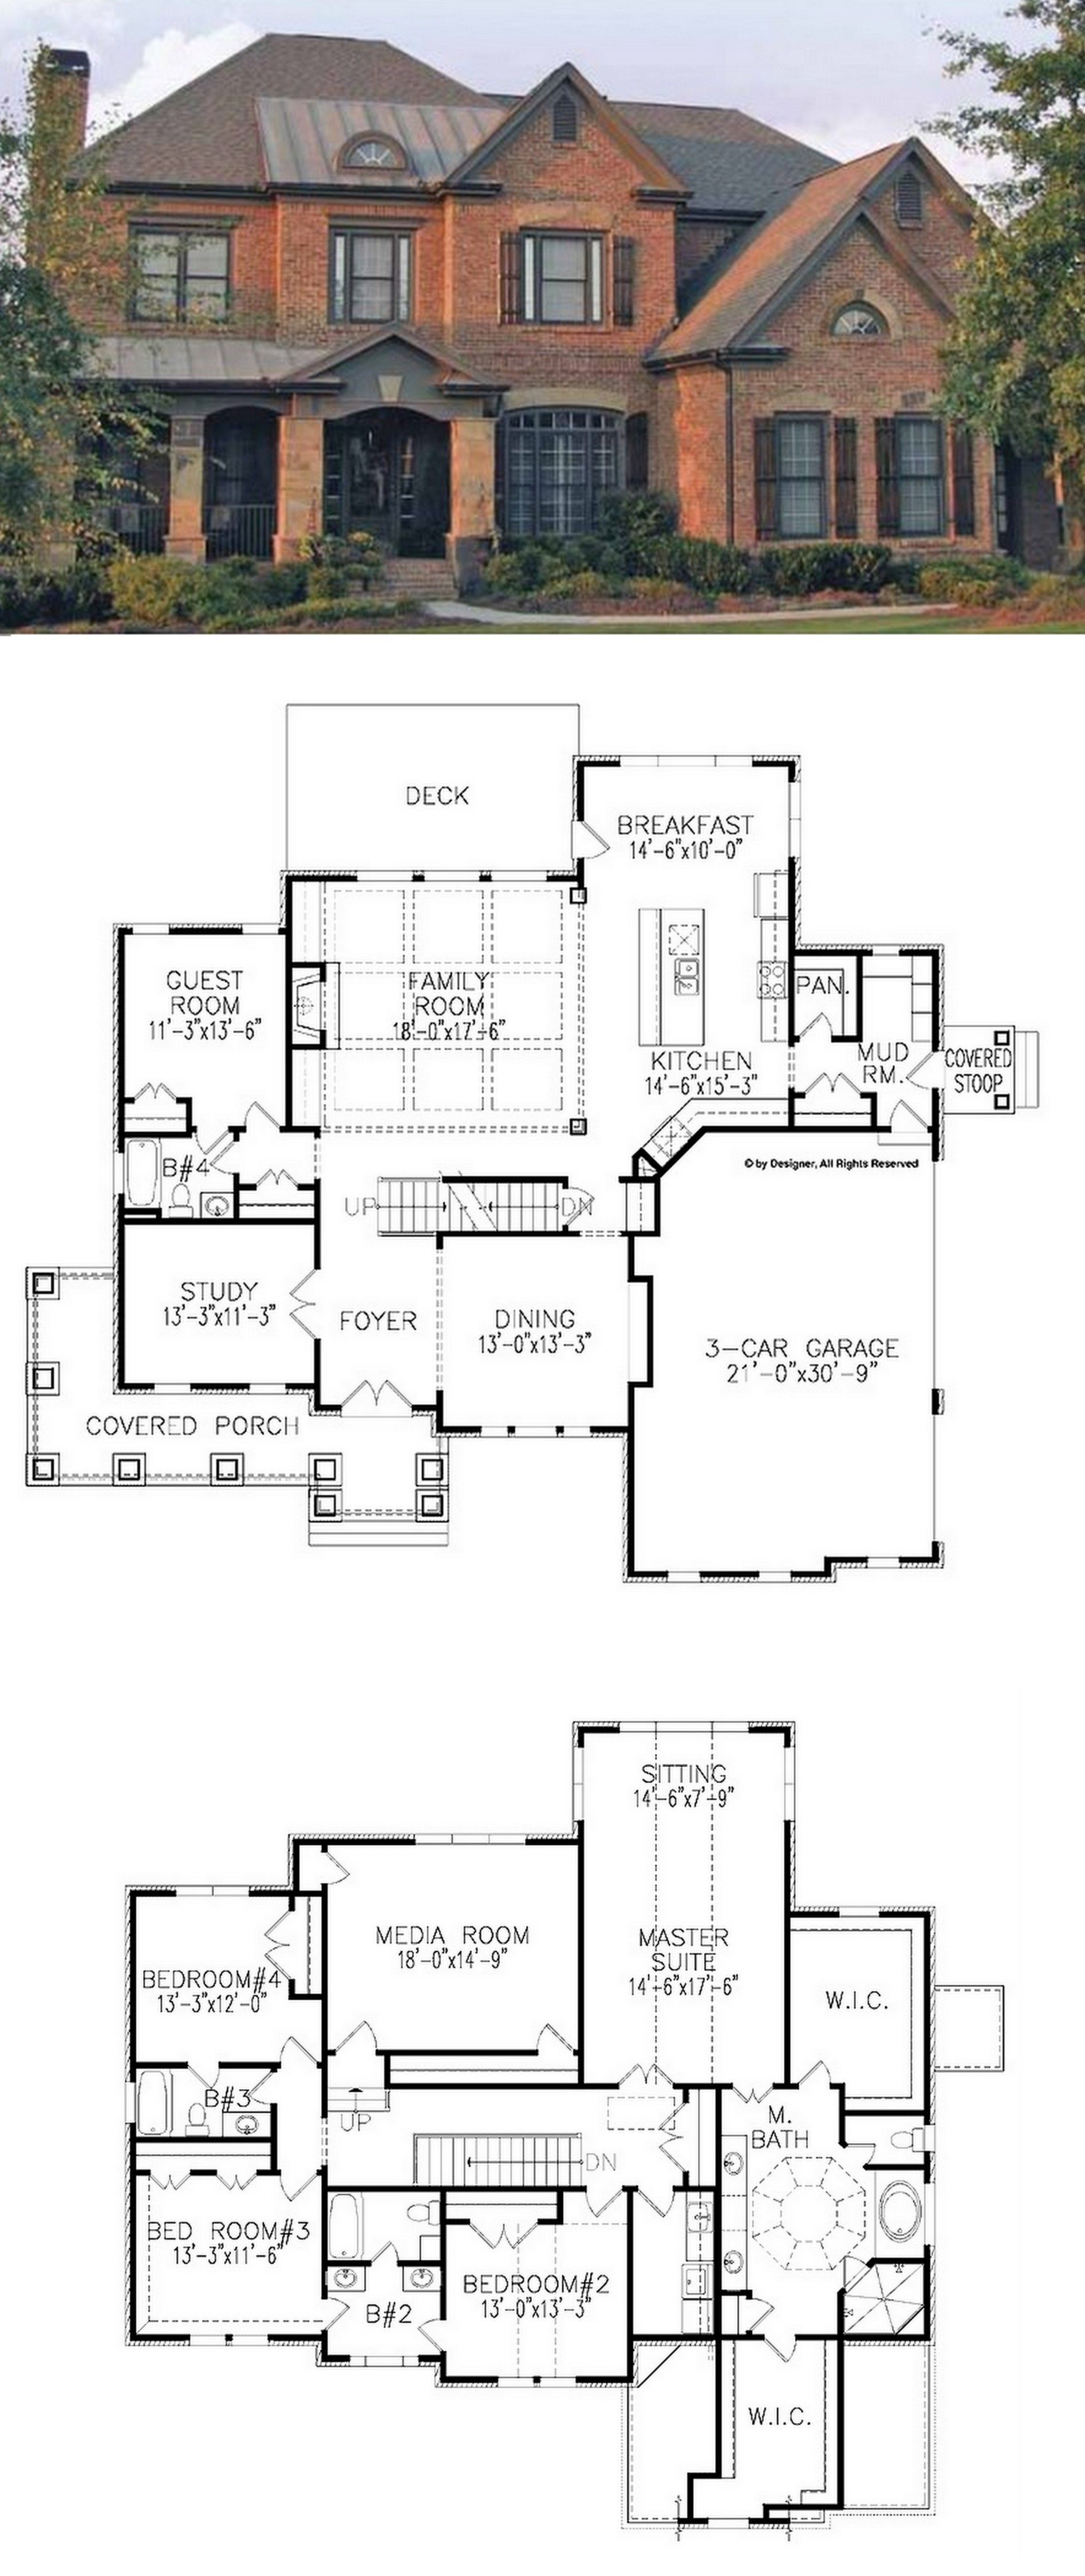 Traditional house plan with square feet and bedrooms from dream home source also best one day images future build diy ideas for rh pinterest